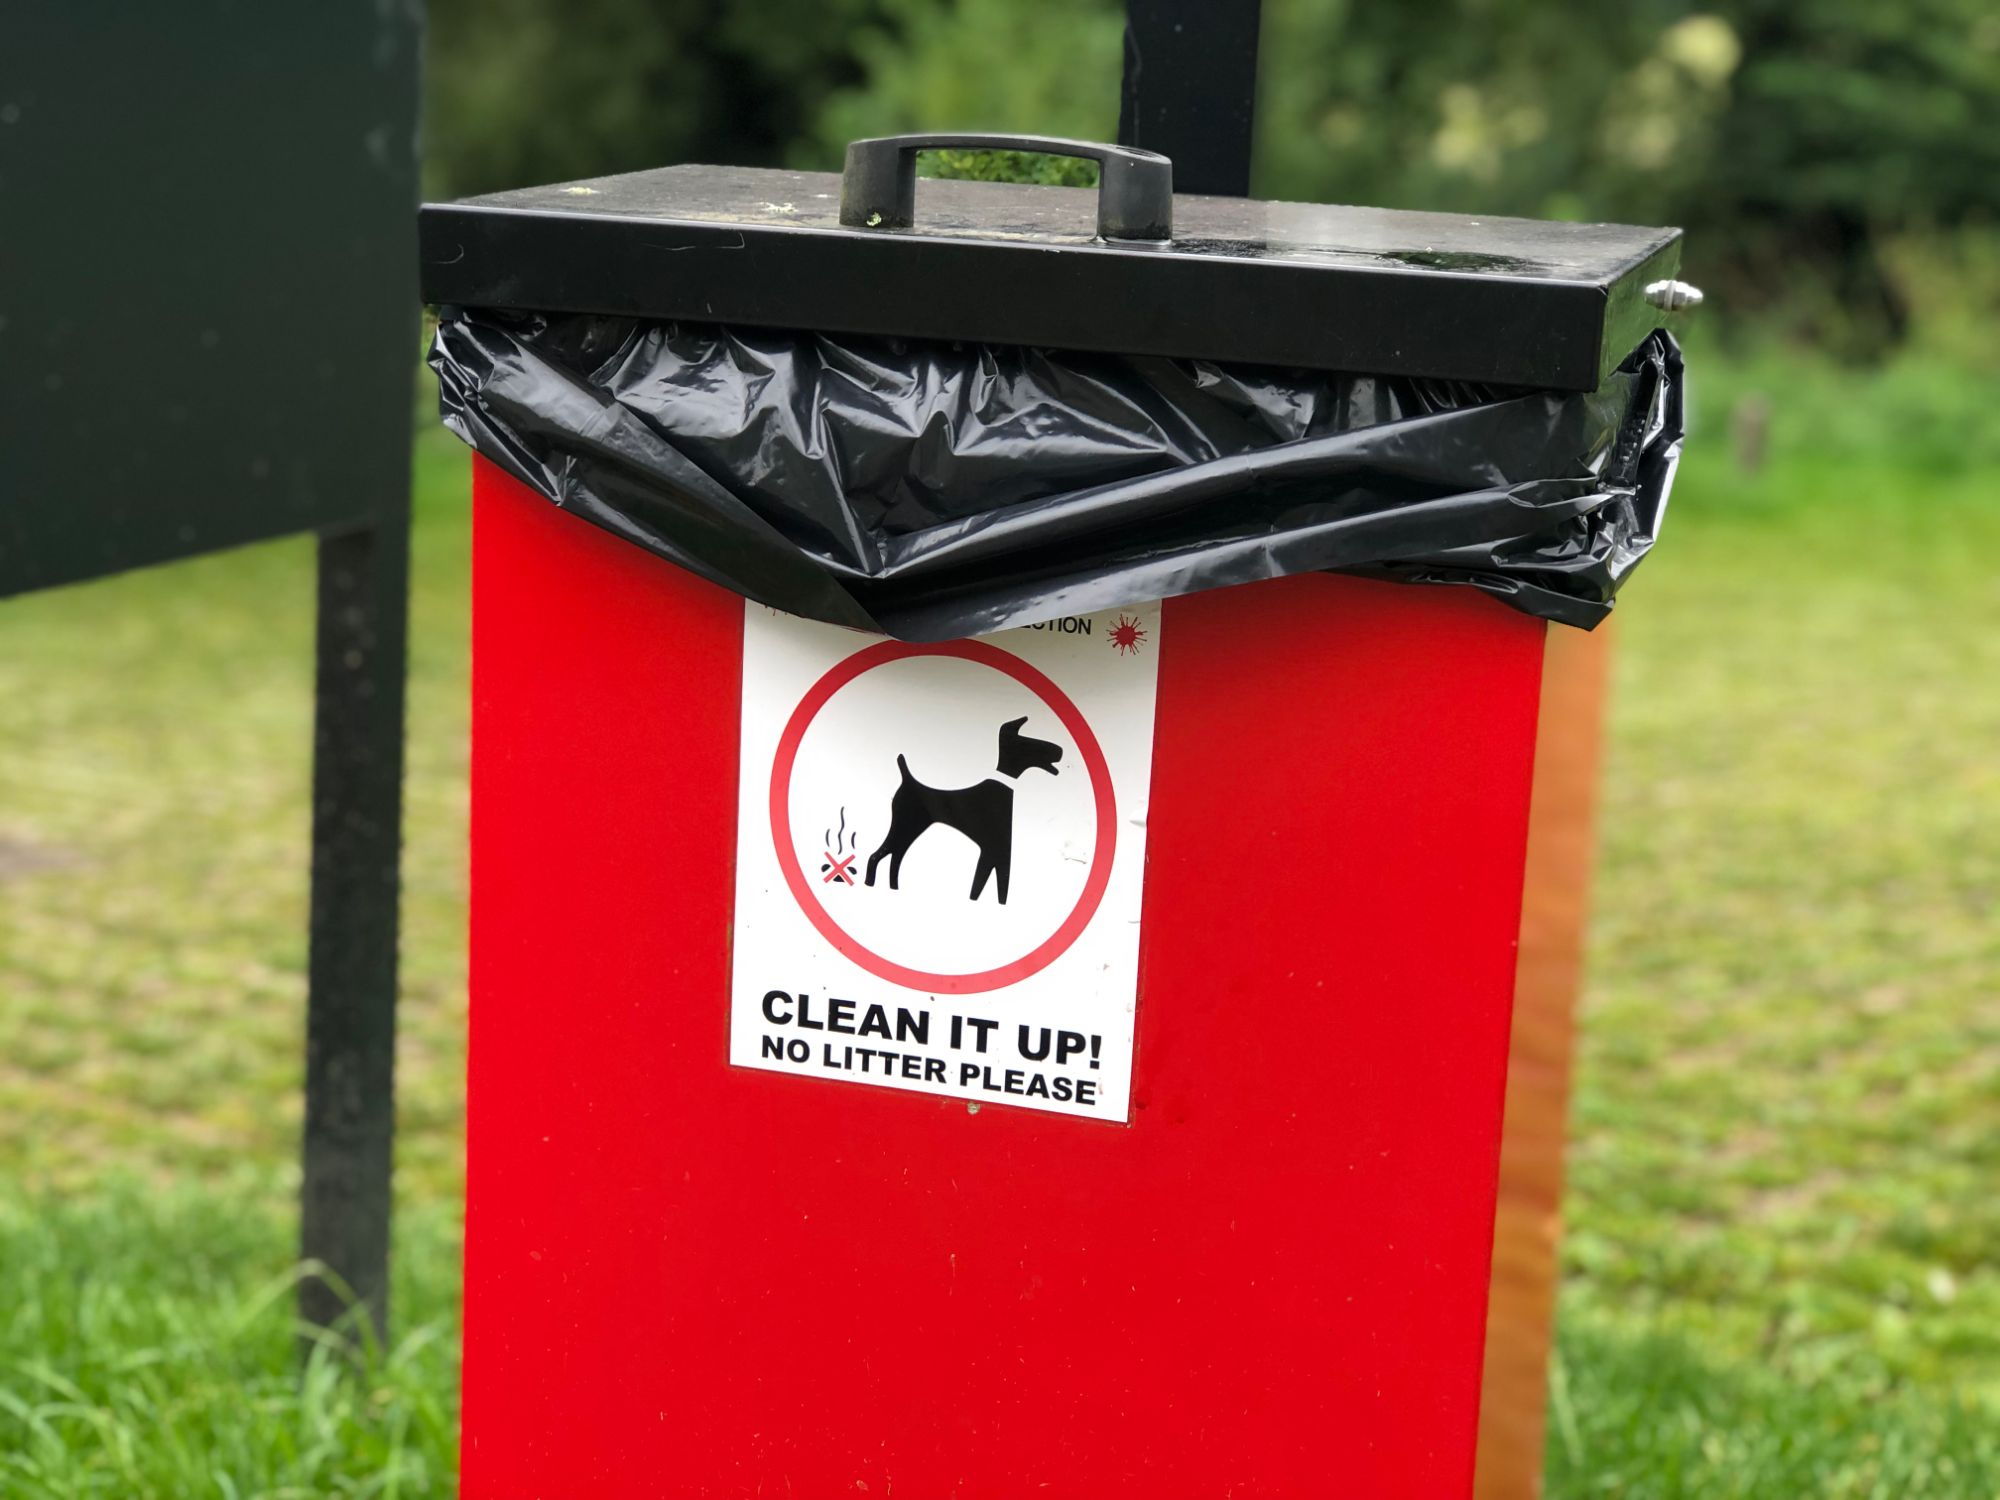 free stock image photo clean it up no litter please dog poo